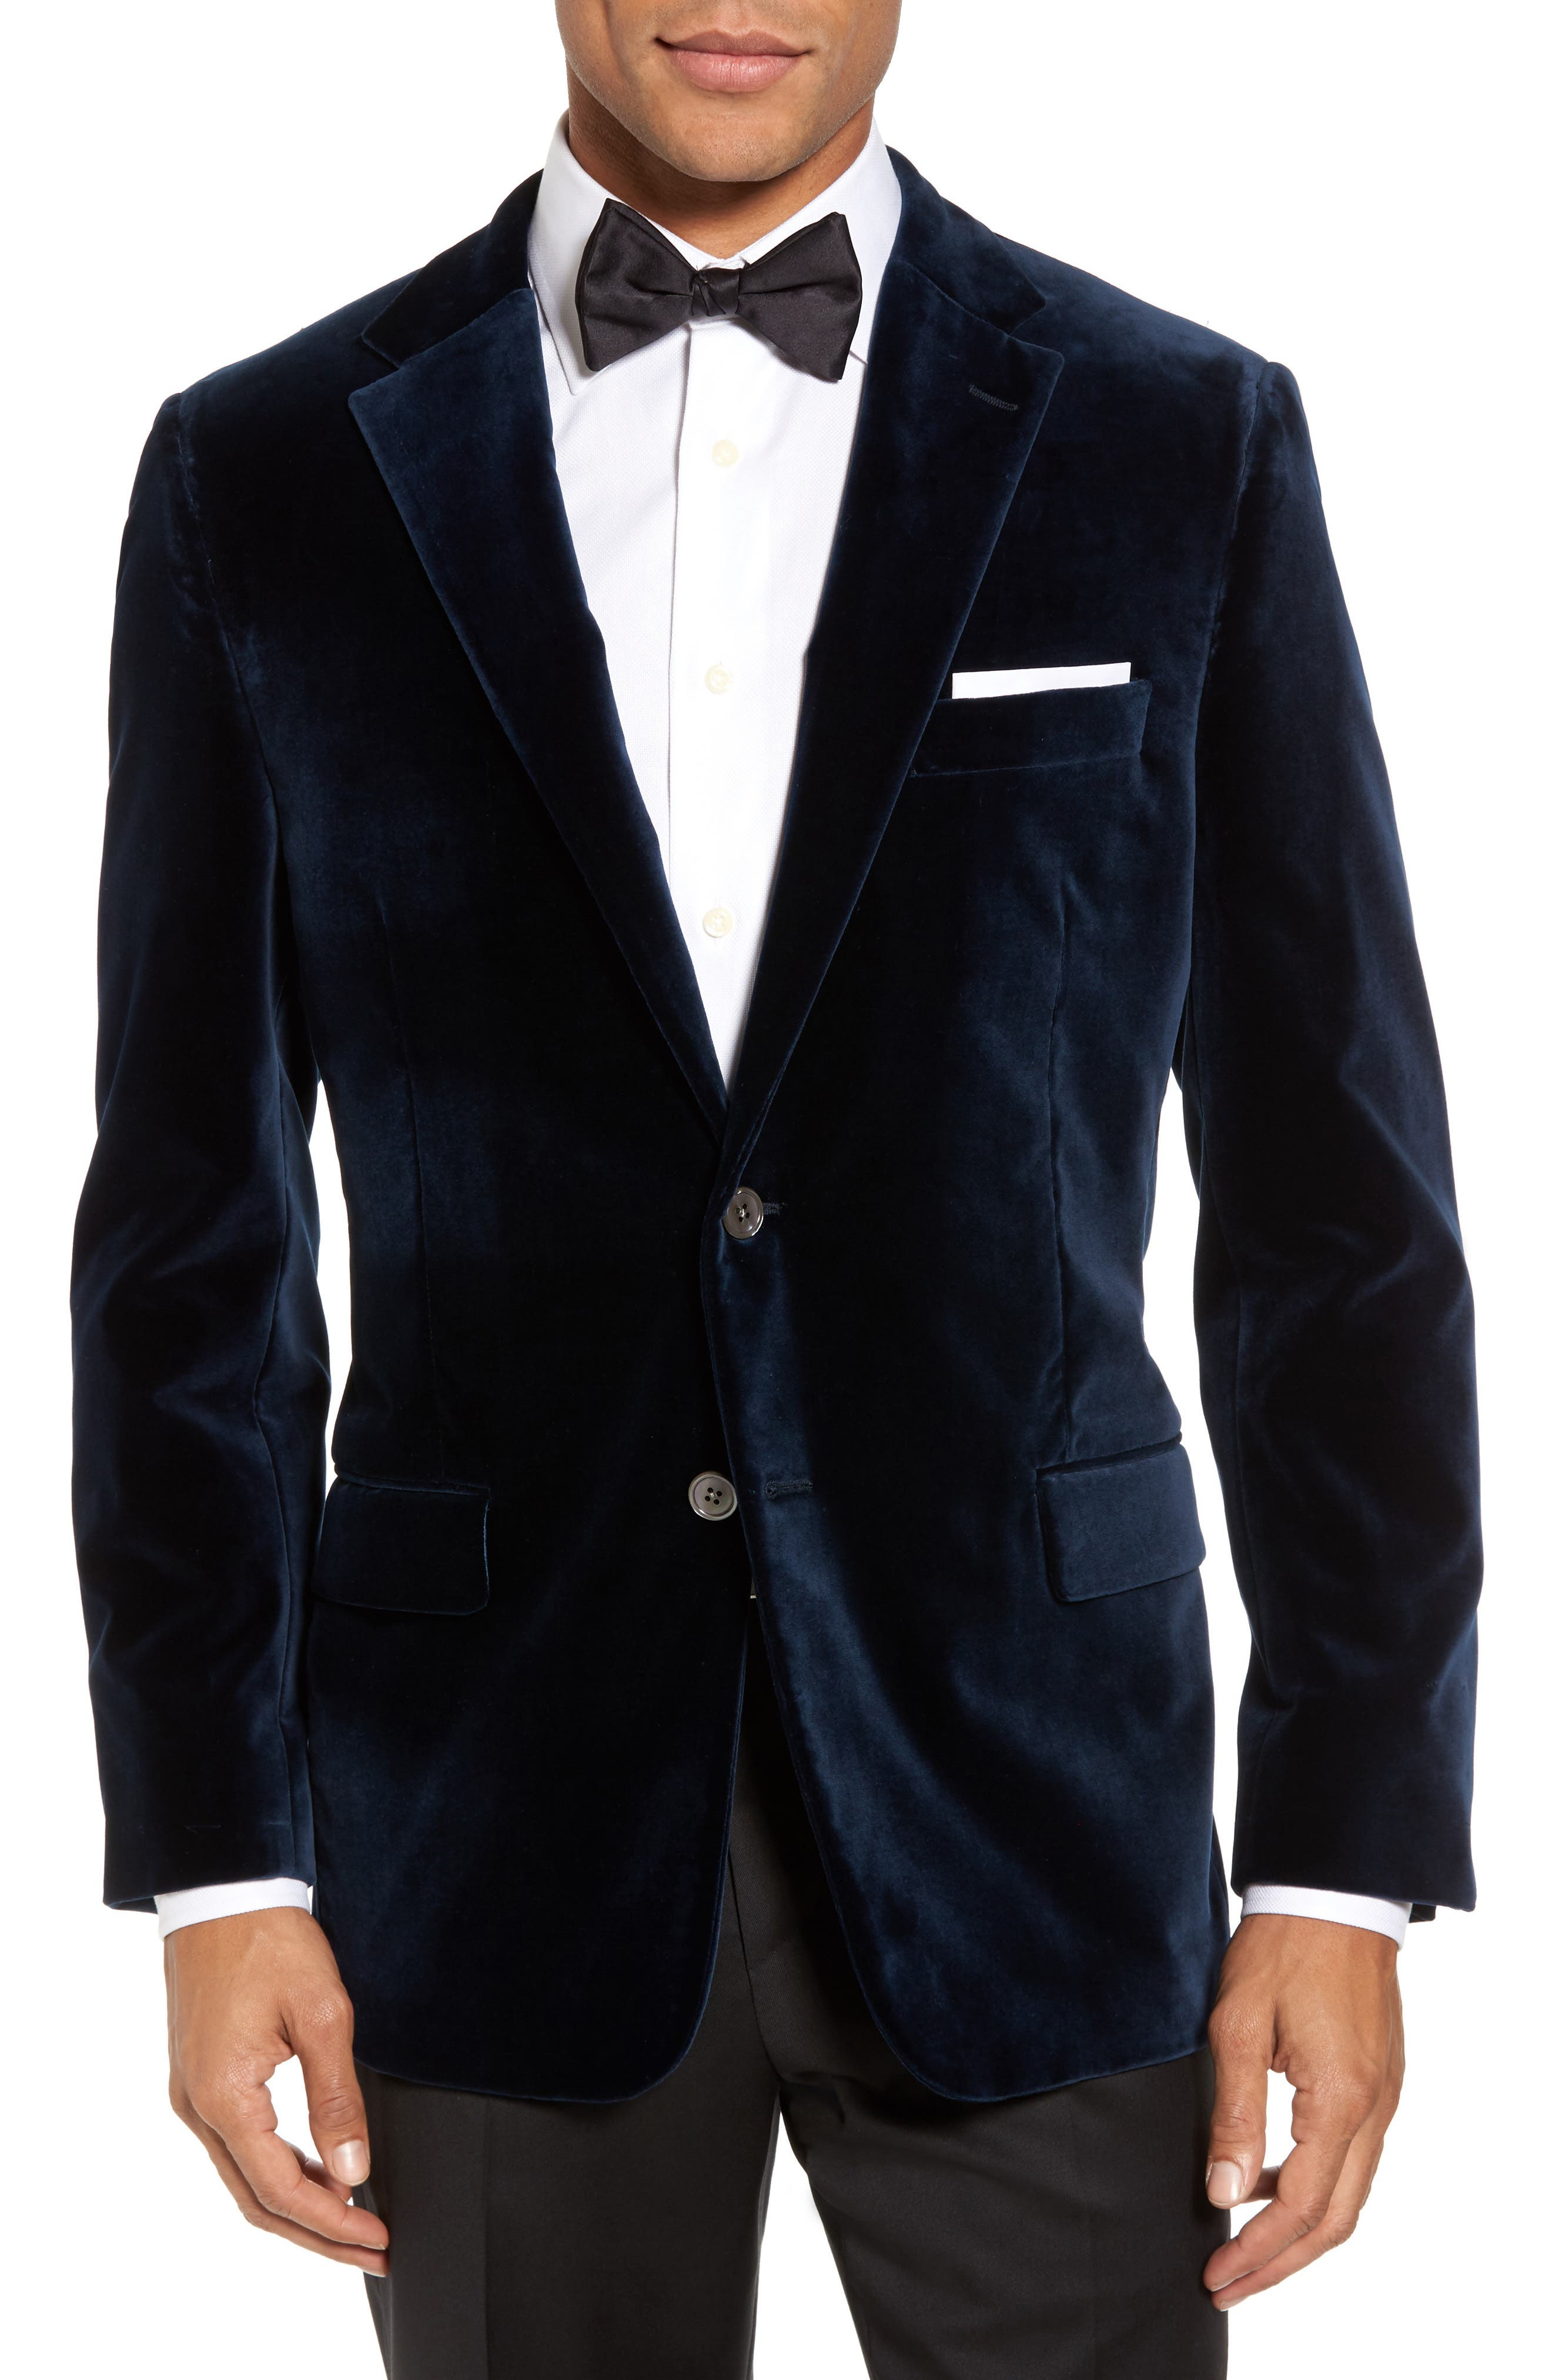 Alternate Image 1 Selected - Hickey Freeman Classic B Fit Stretch Velvet Dinner Jacket